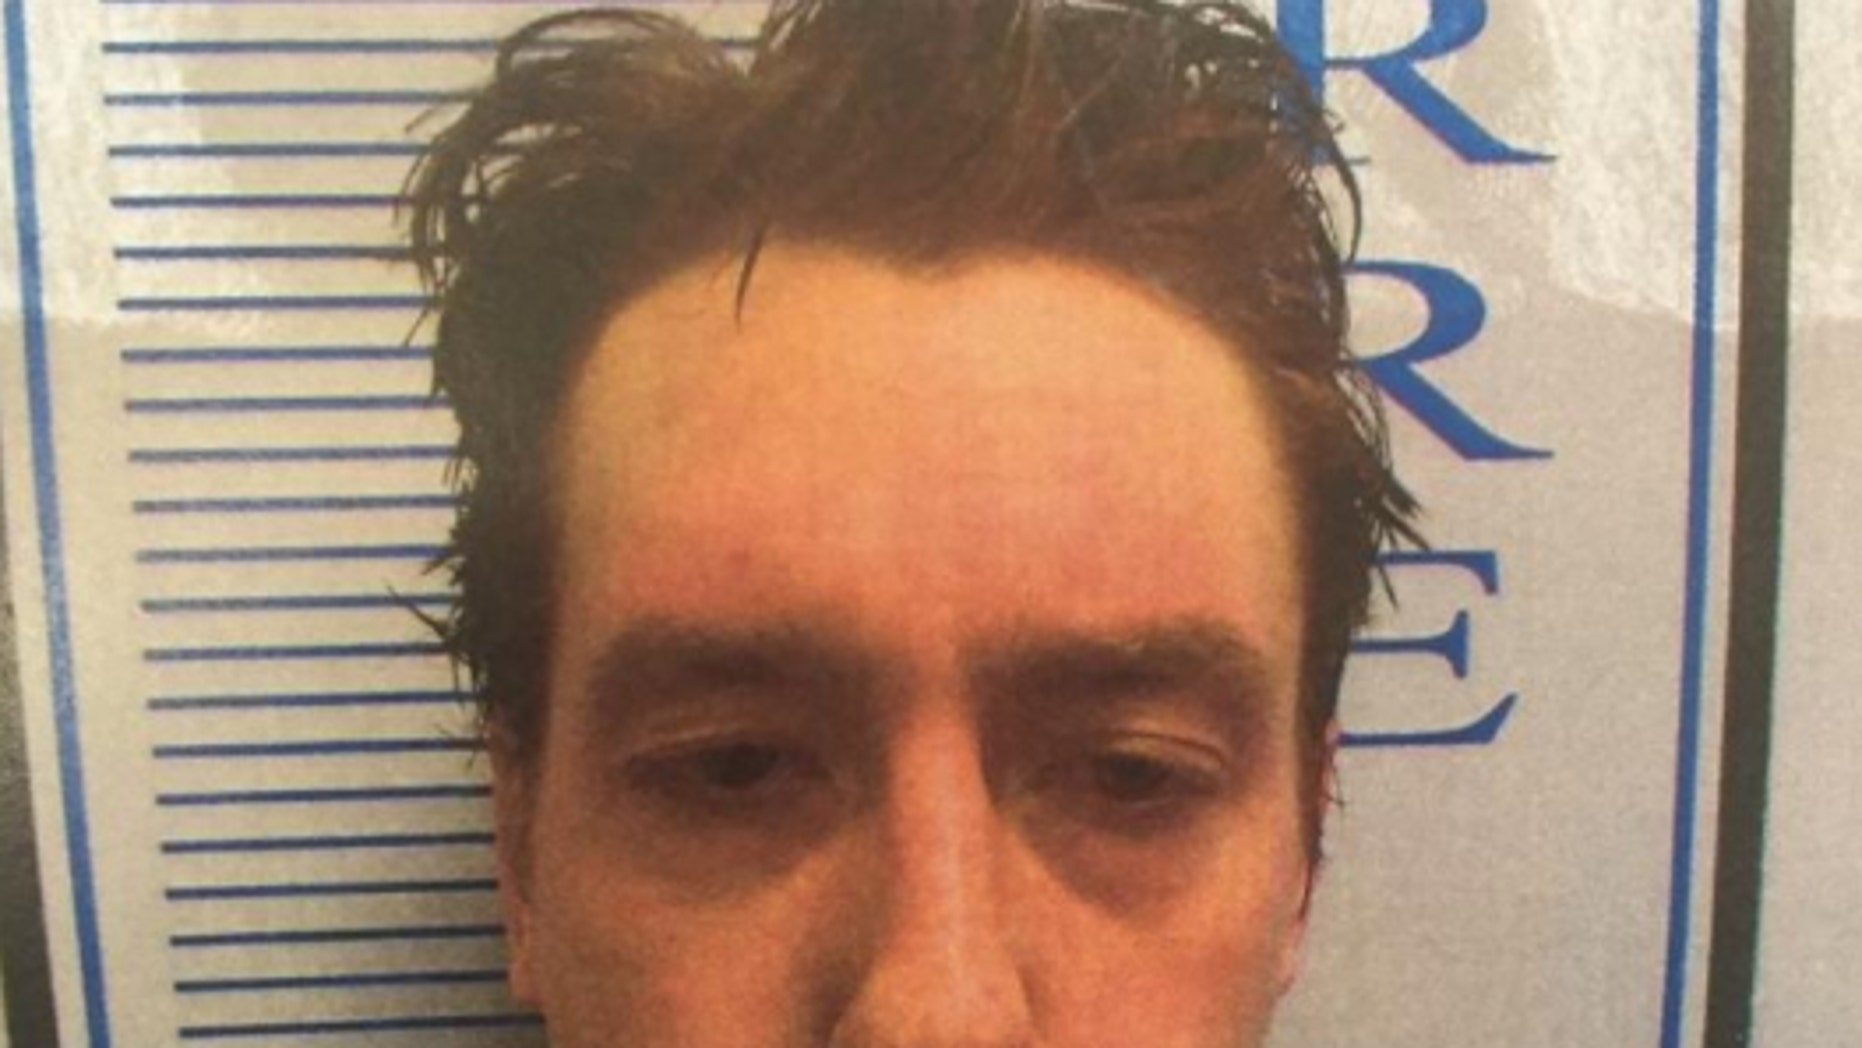 Police say Sean Coulson, 30, burst into his former place of employment to rob the place, then later tried to claim it was a joke.